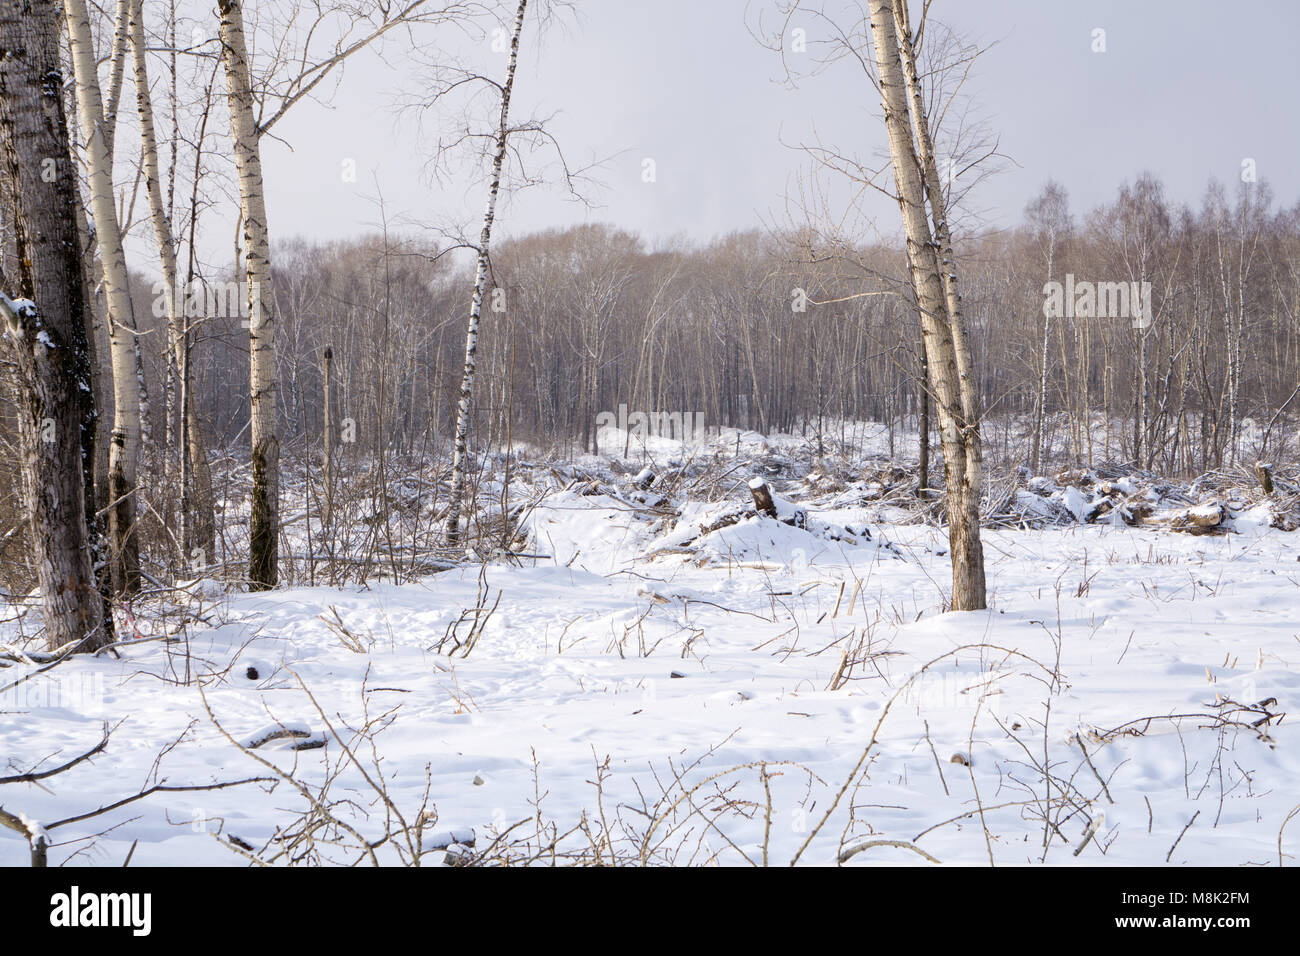 Snow covered dead tree trunk, collapsed and fallen over. Canadian winter scene - Stock Image